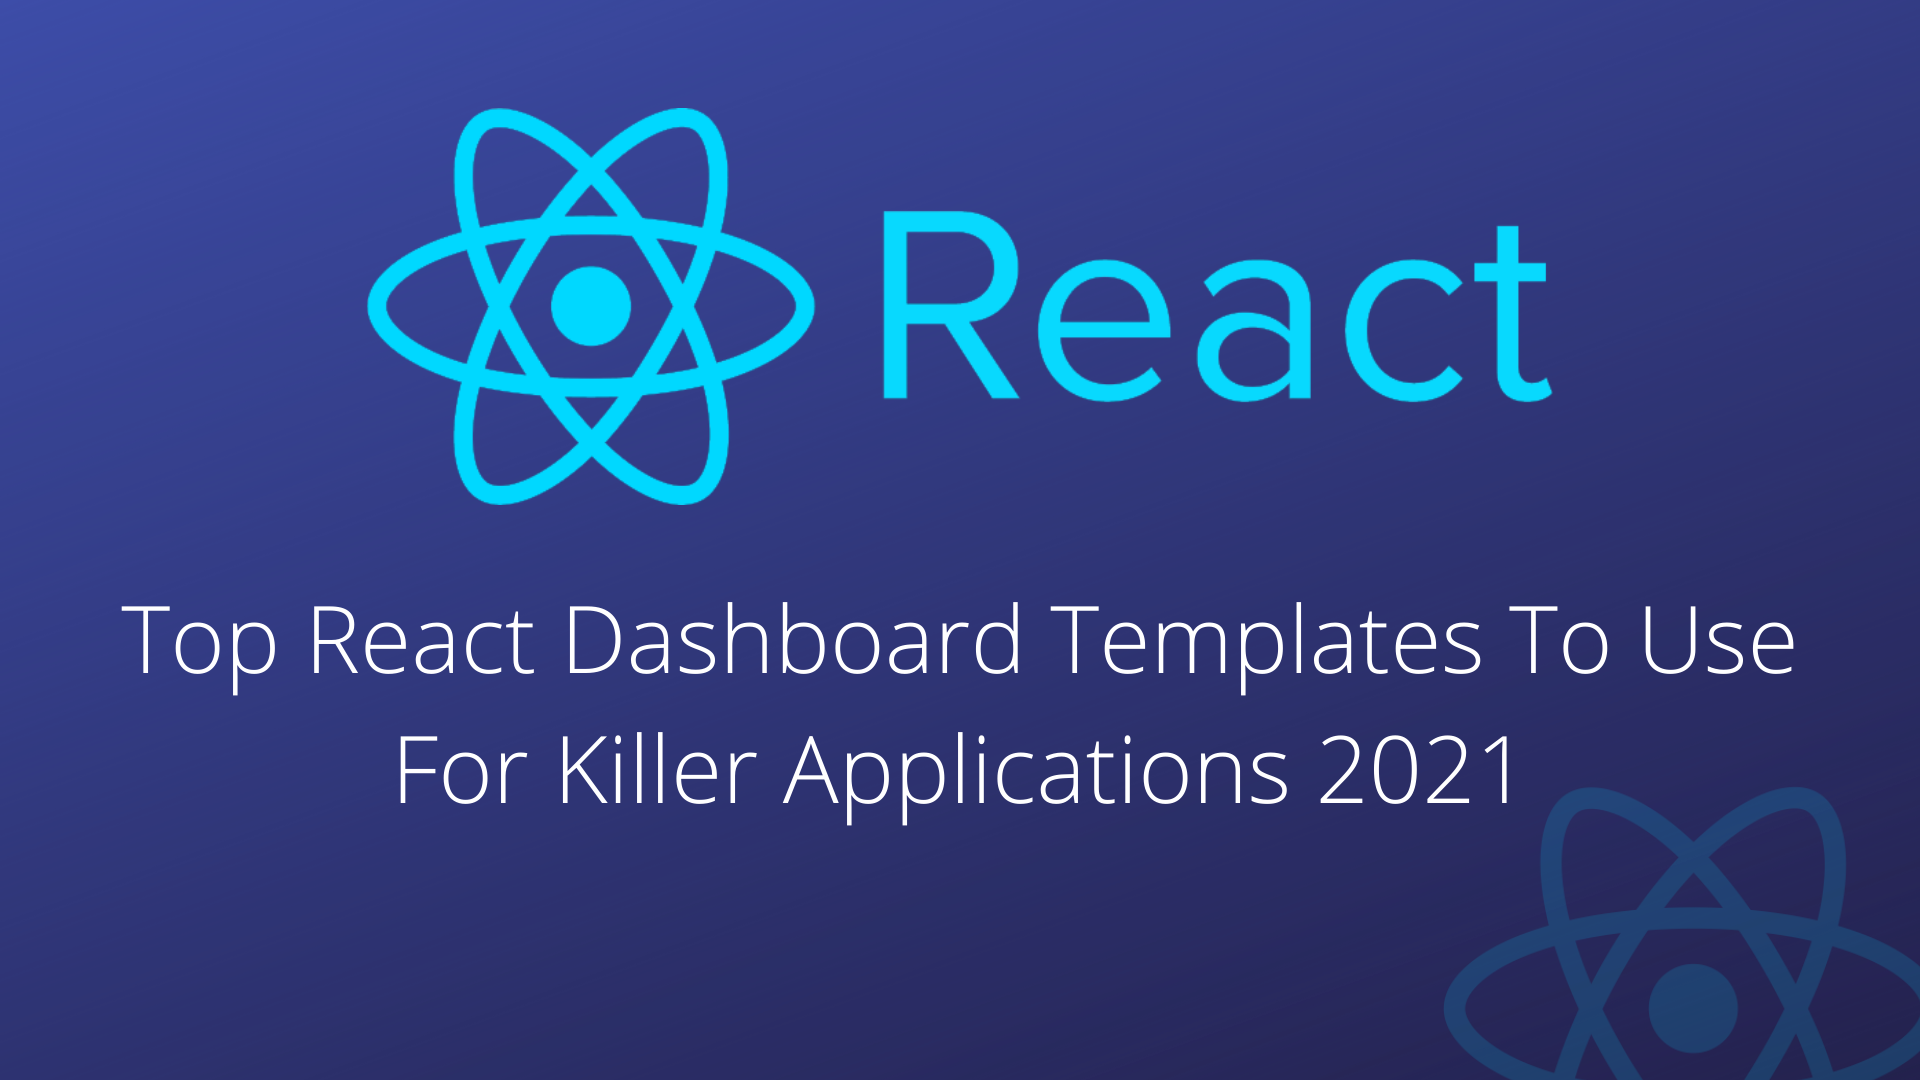 Top React Dashboard Templates To Use For Killer Applications 2021